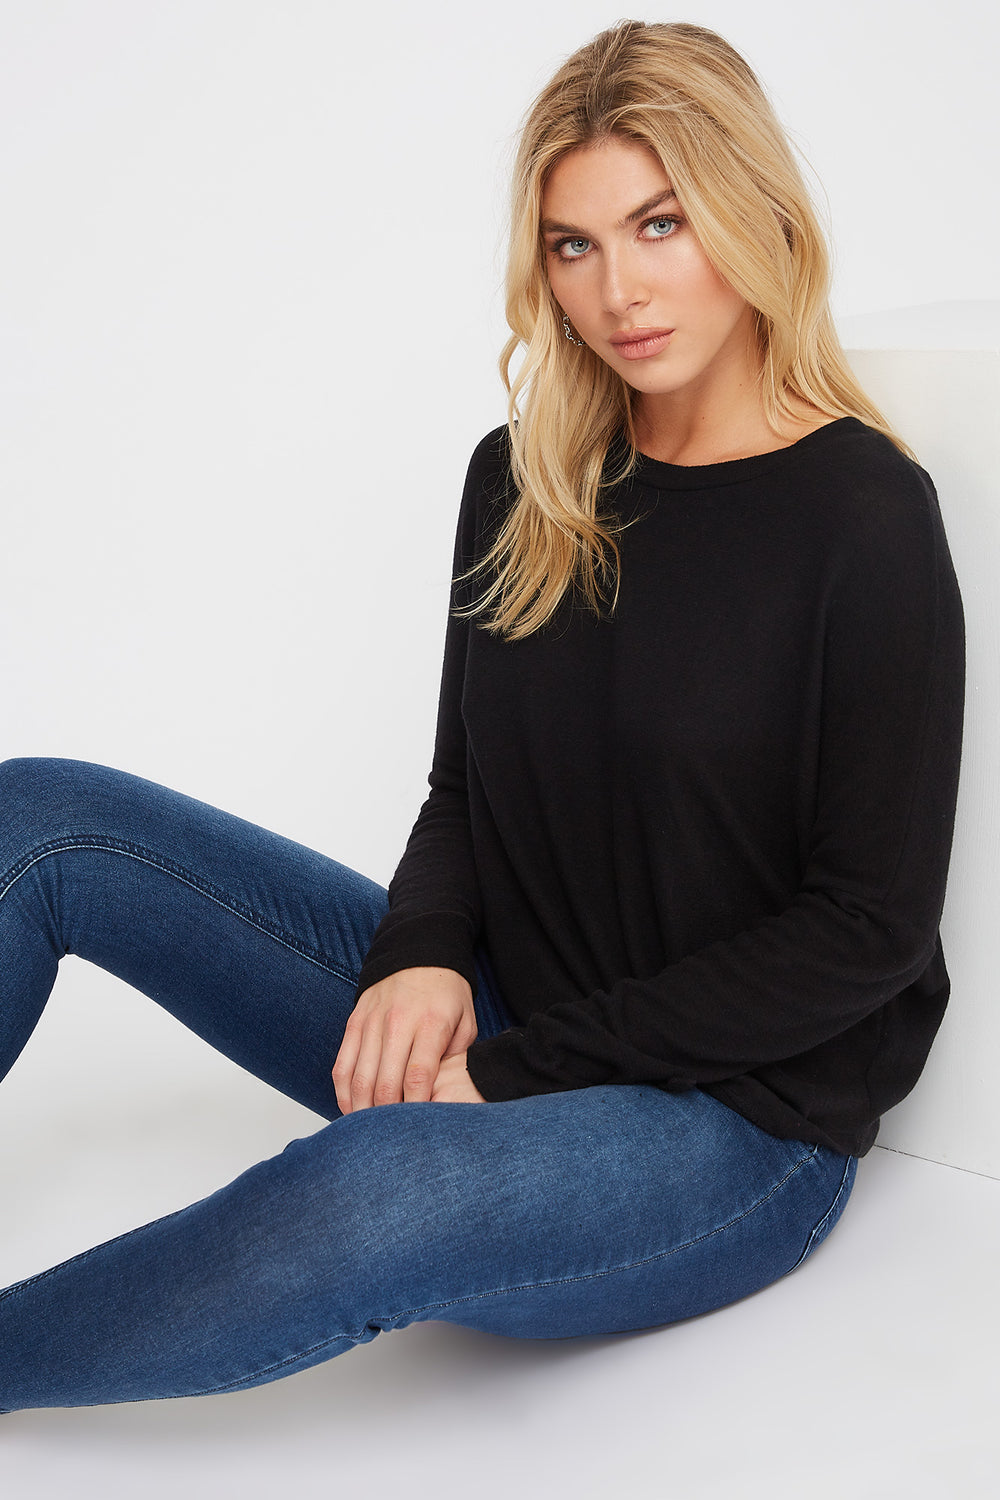 Soft Tie Dolman Long Sleeve Black